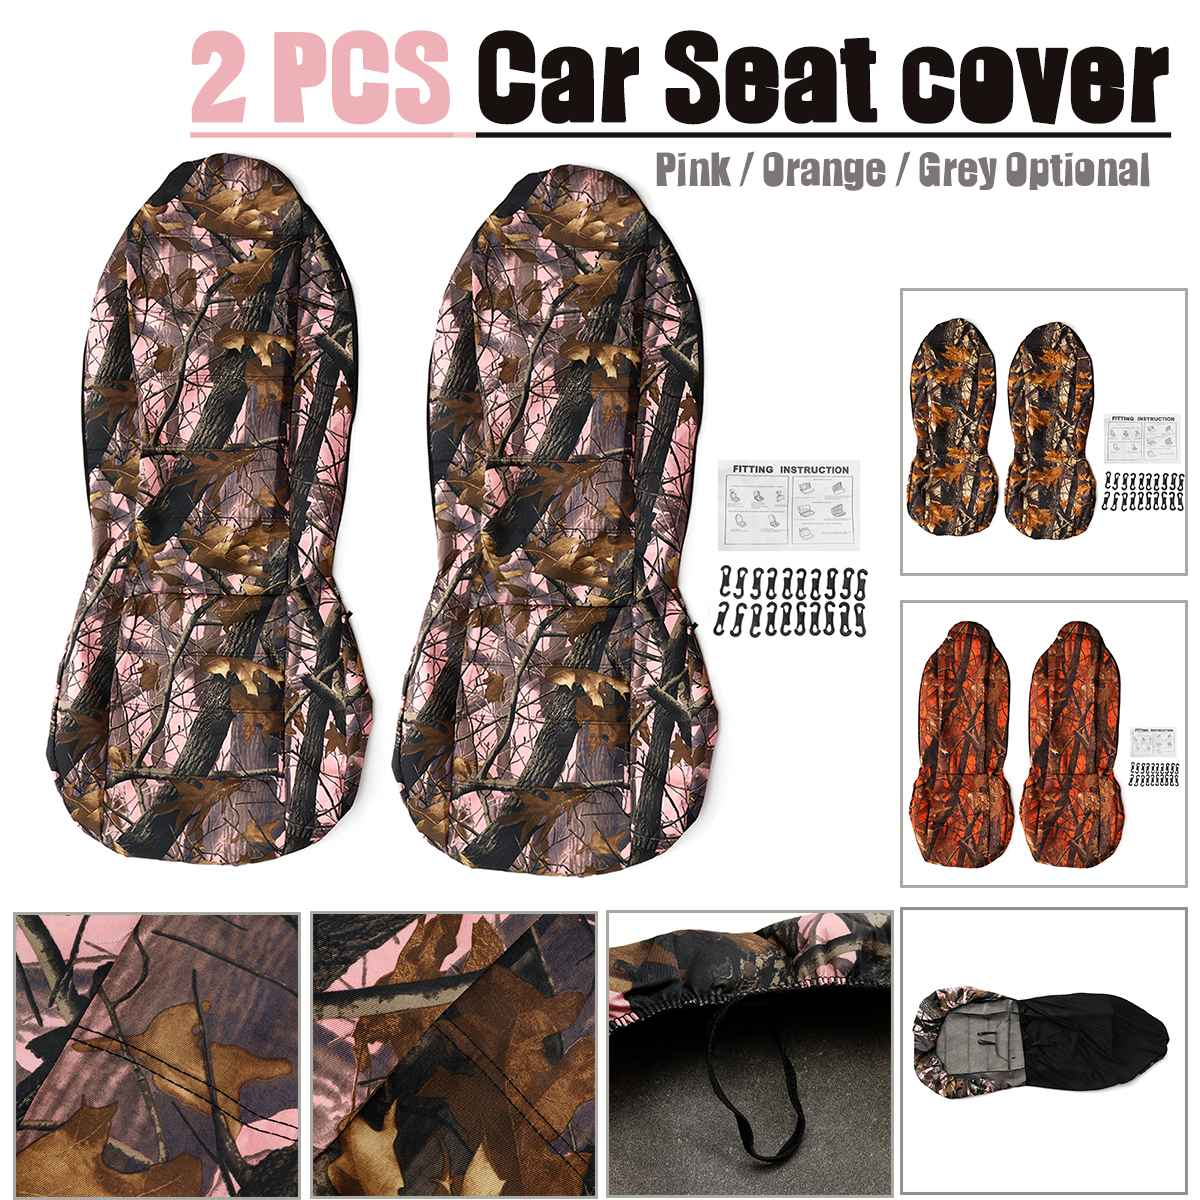 2PCS Car Seat Cover Set Camo Camouflage Fabric Front and Back Protector Fit For Jeep Pickup Truck SUV Most Car